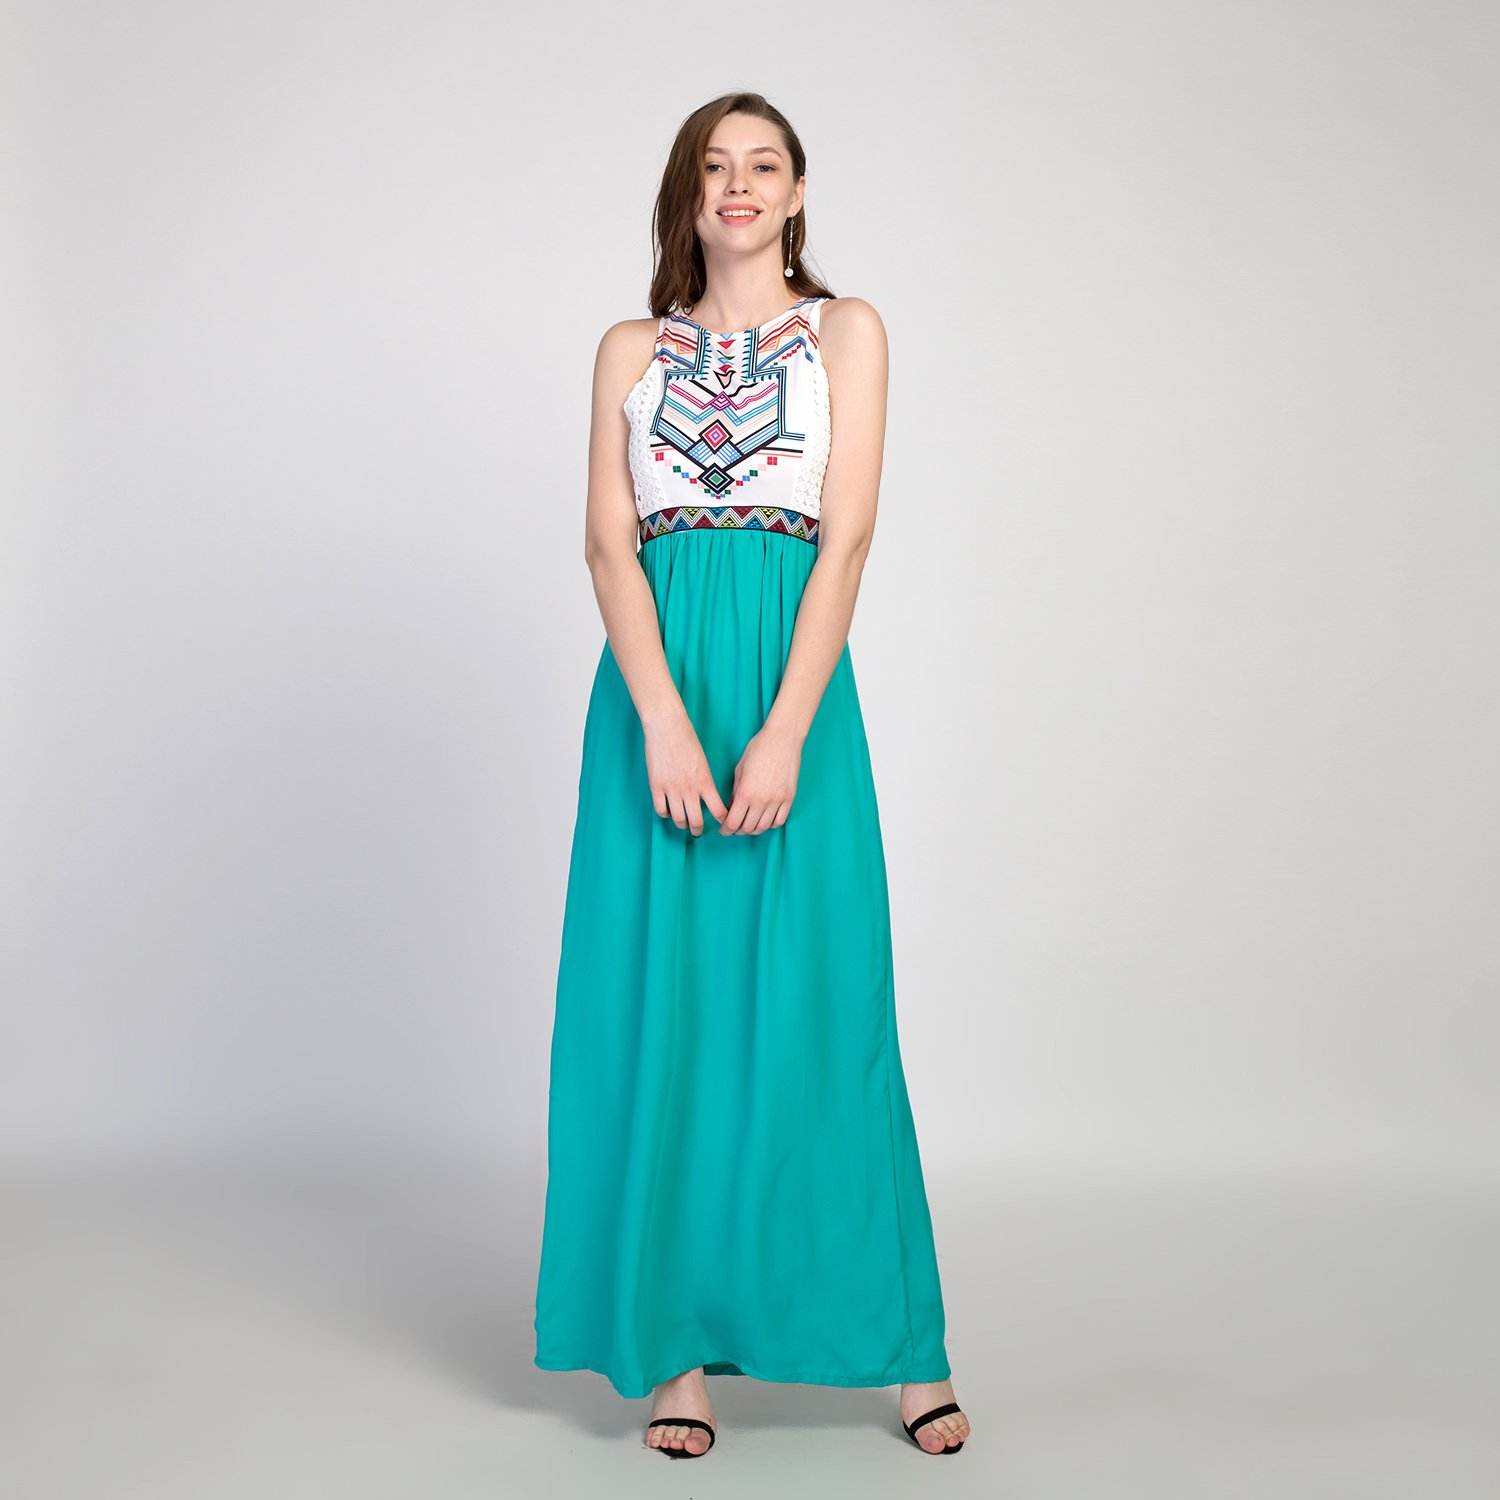 Modern Maxi Dresses For Engagement Party Festooning - All Wedding ...